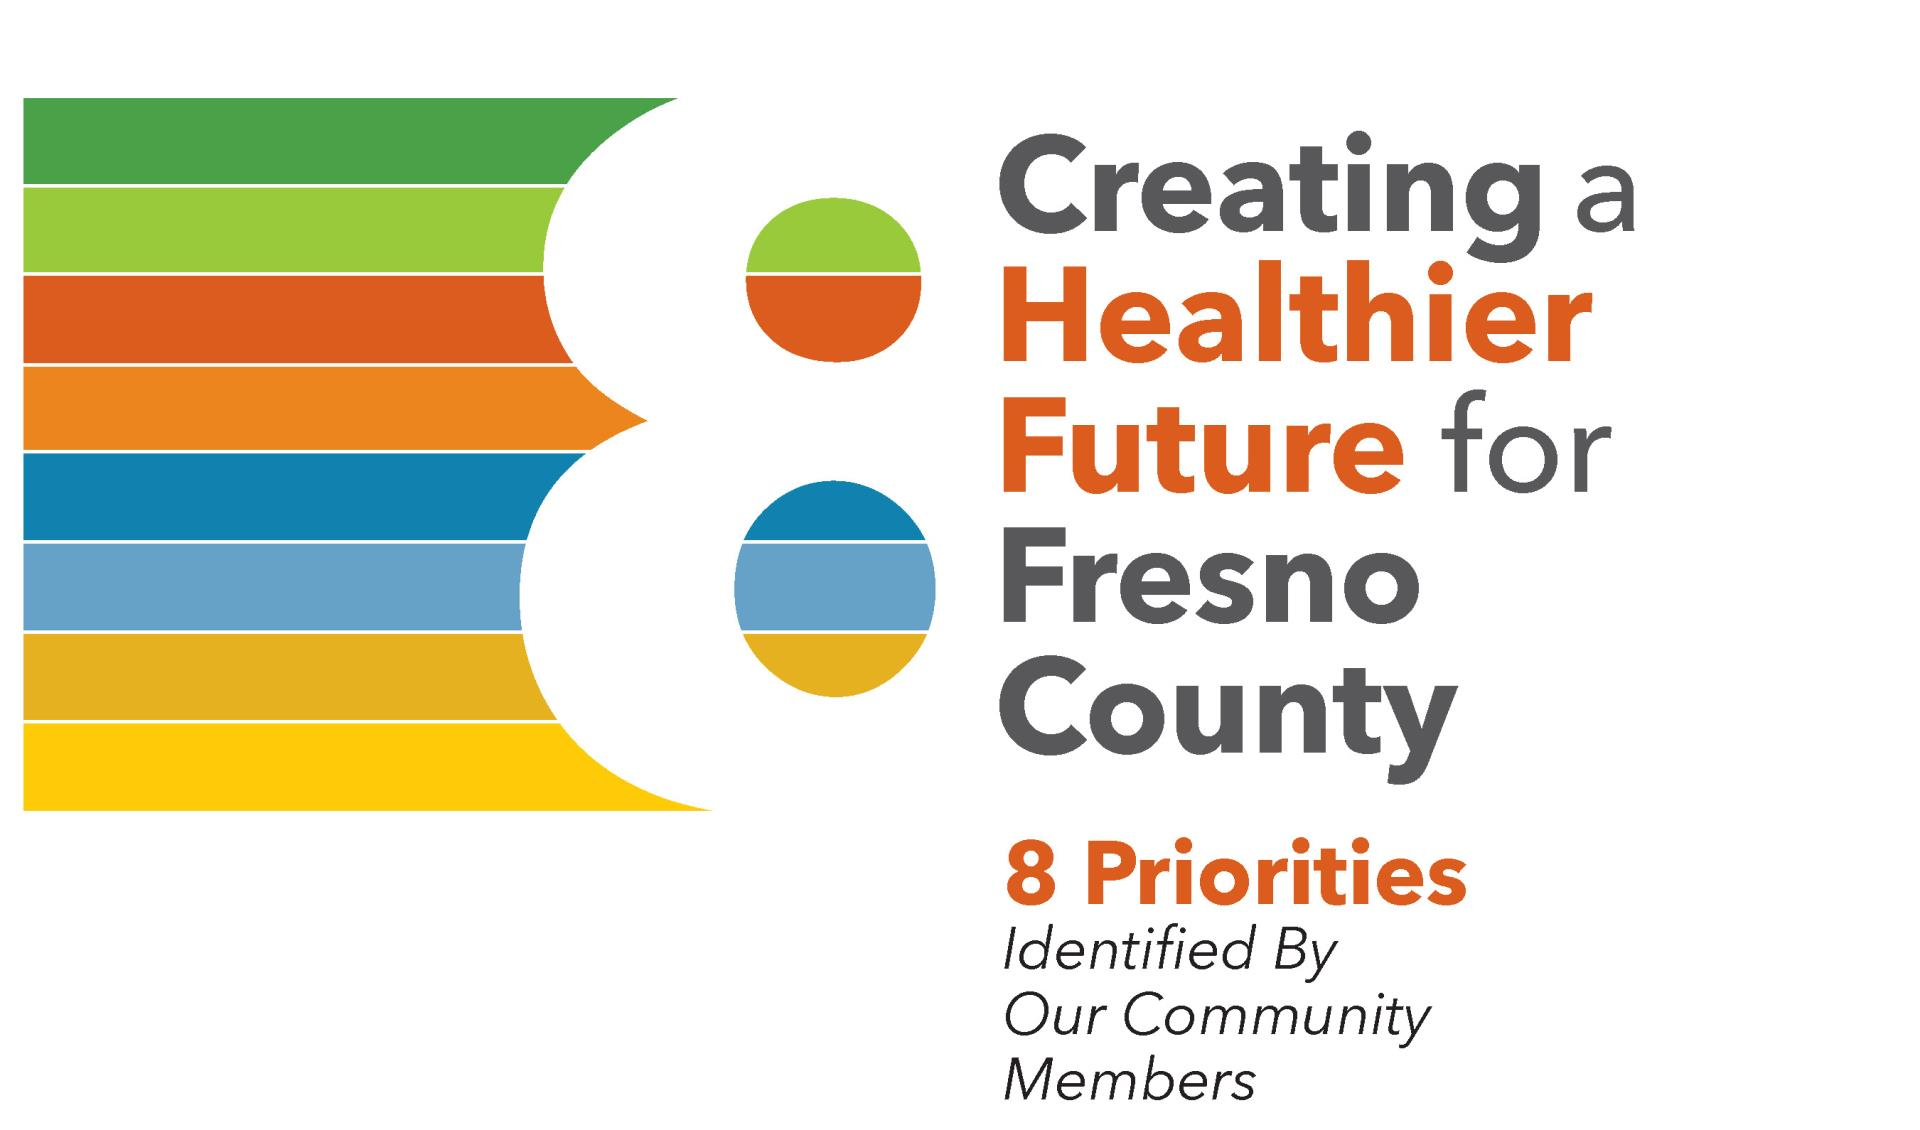 Creating a Healthier Future for Fresno County (Cover)